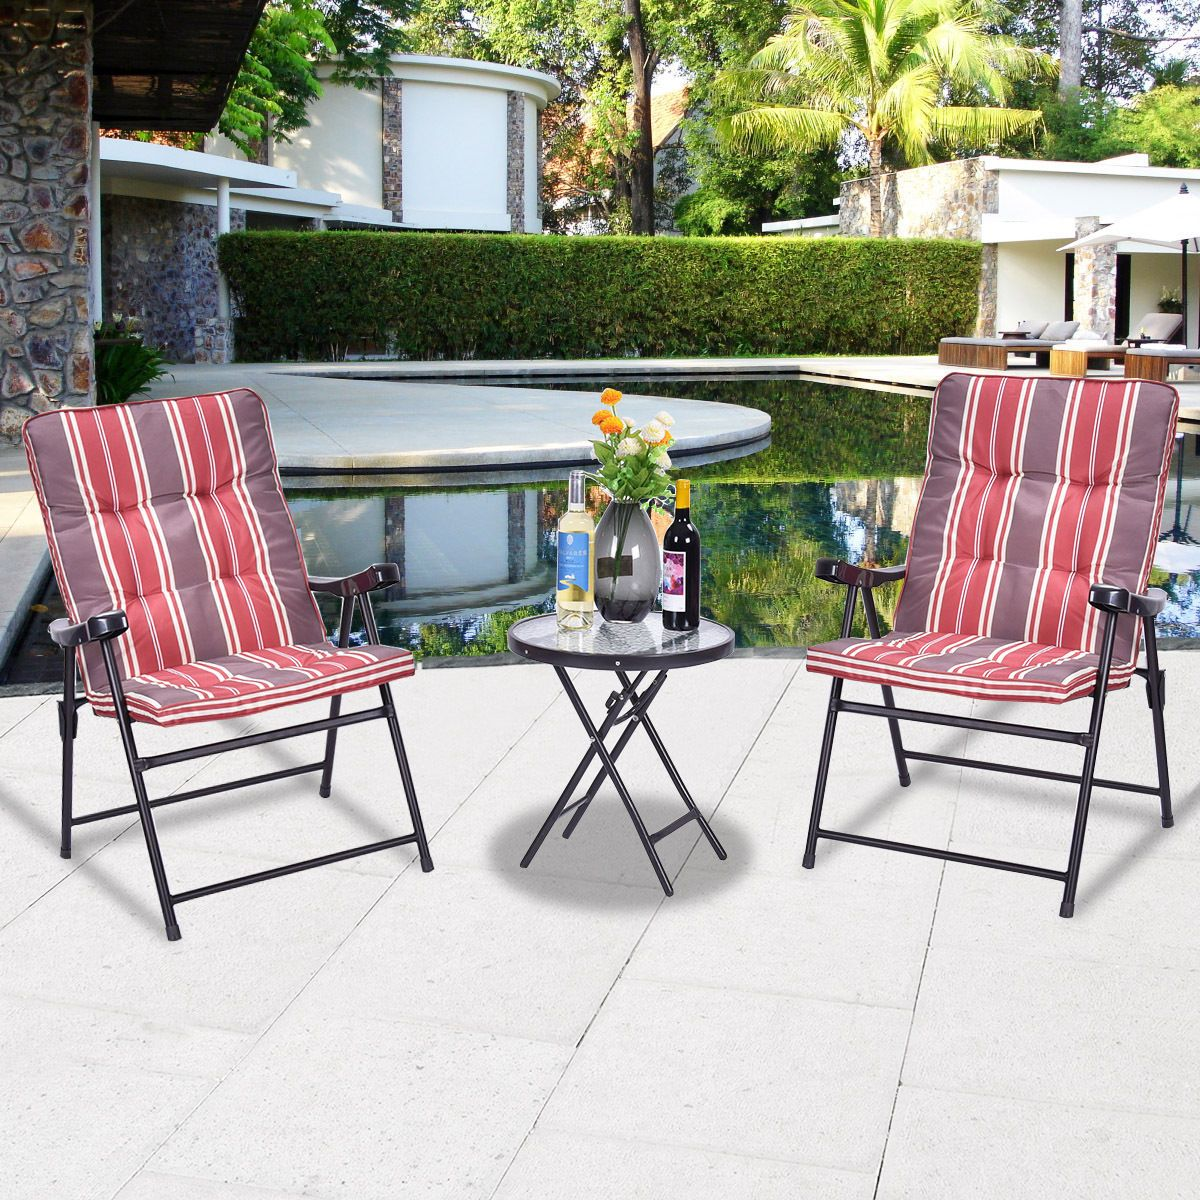 Patio pcs outdoor folding chairs table set furniture garden with